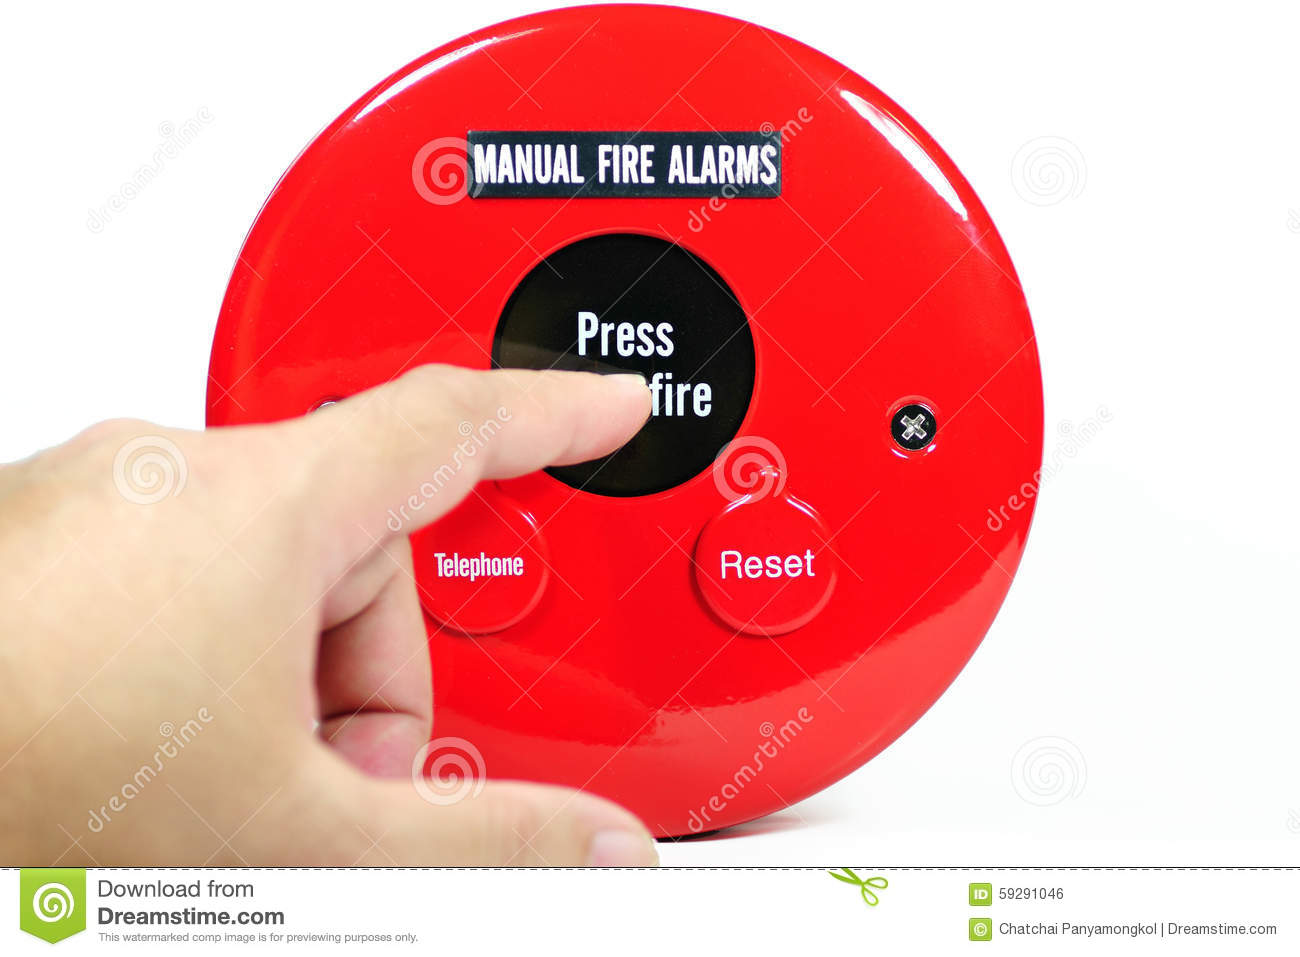 The Panic Manual Images Of Home Design Simple Fire Alarm Circuits Using Germanium Diode And Lm341 At Low Cost Finger Pressing On Stock Photo